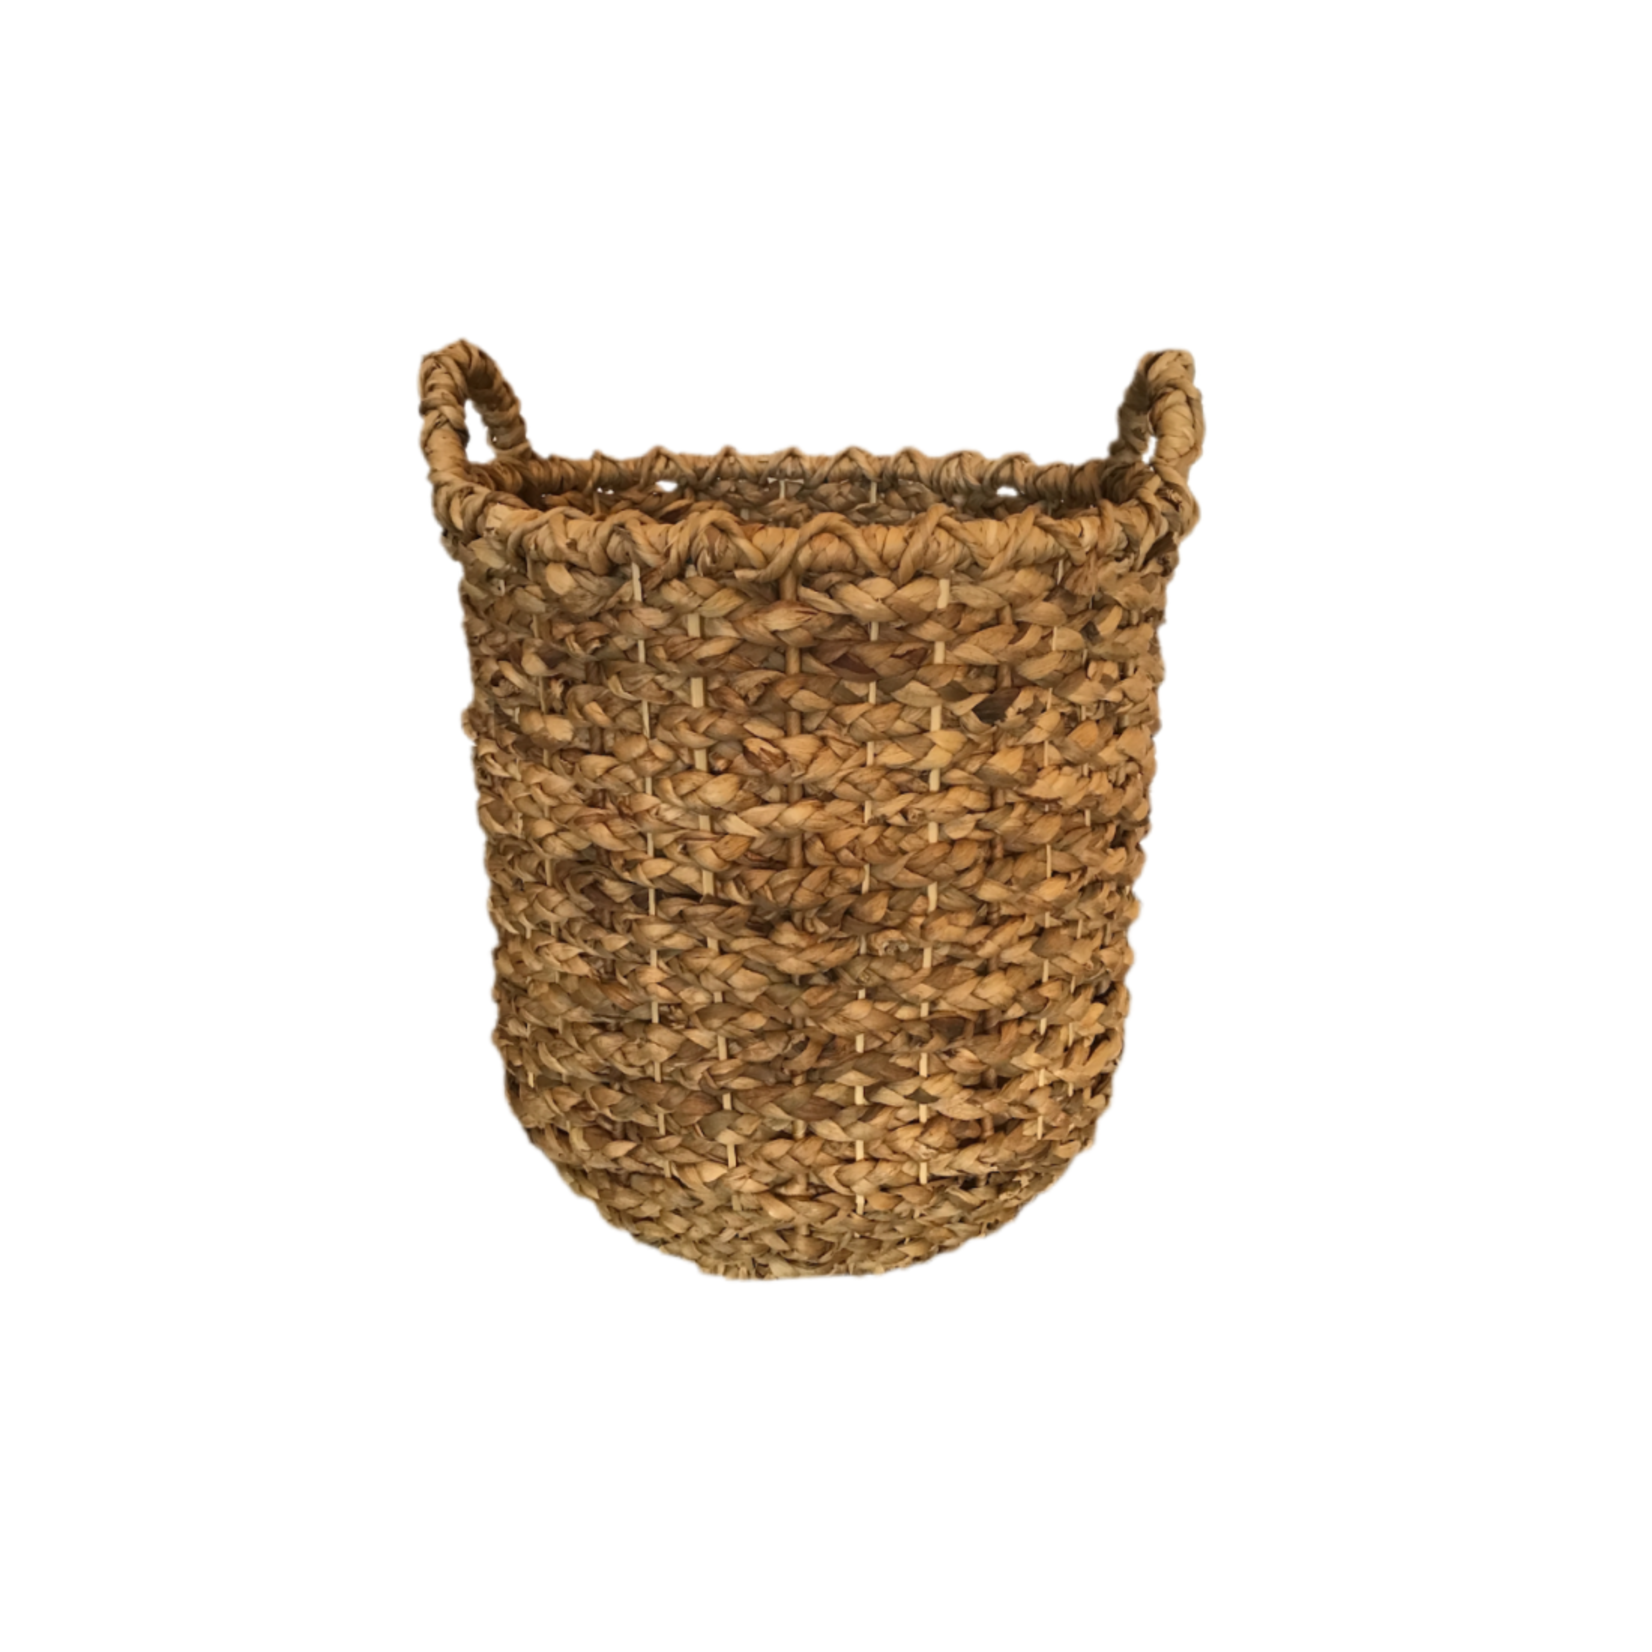 Wyld Blue Home Basket with Handle - Large